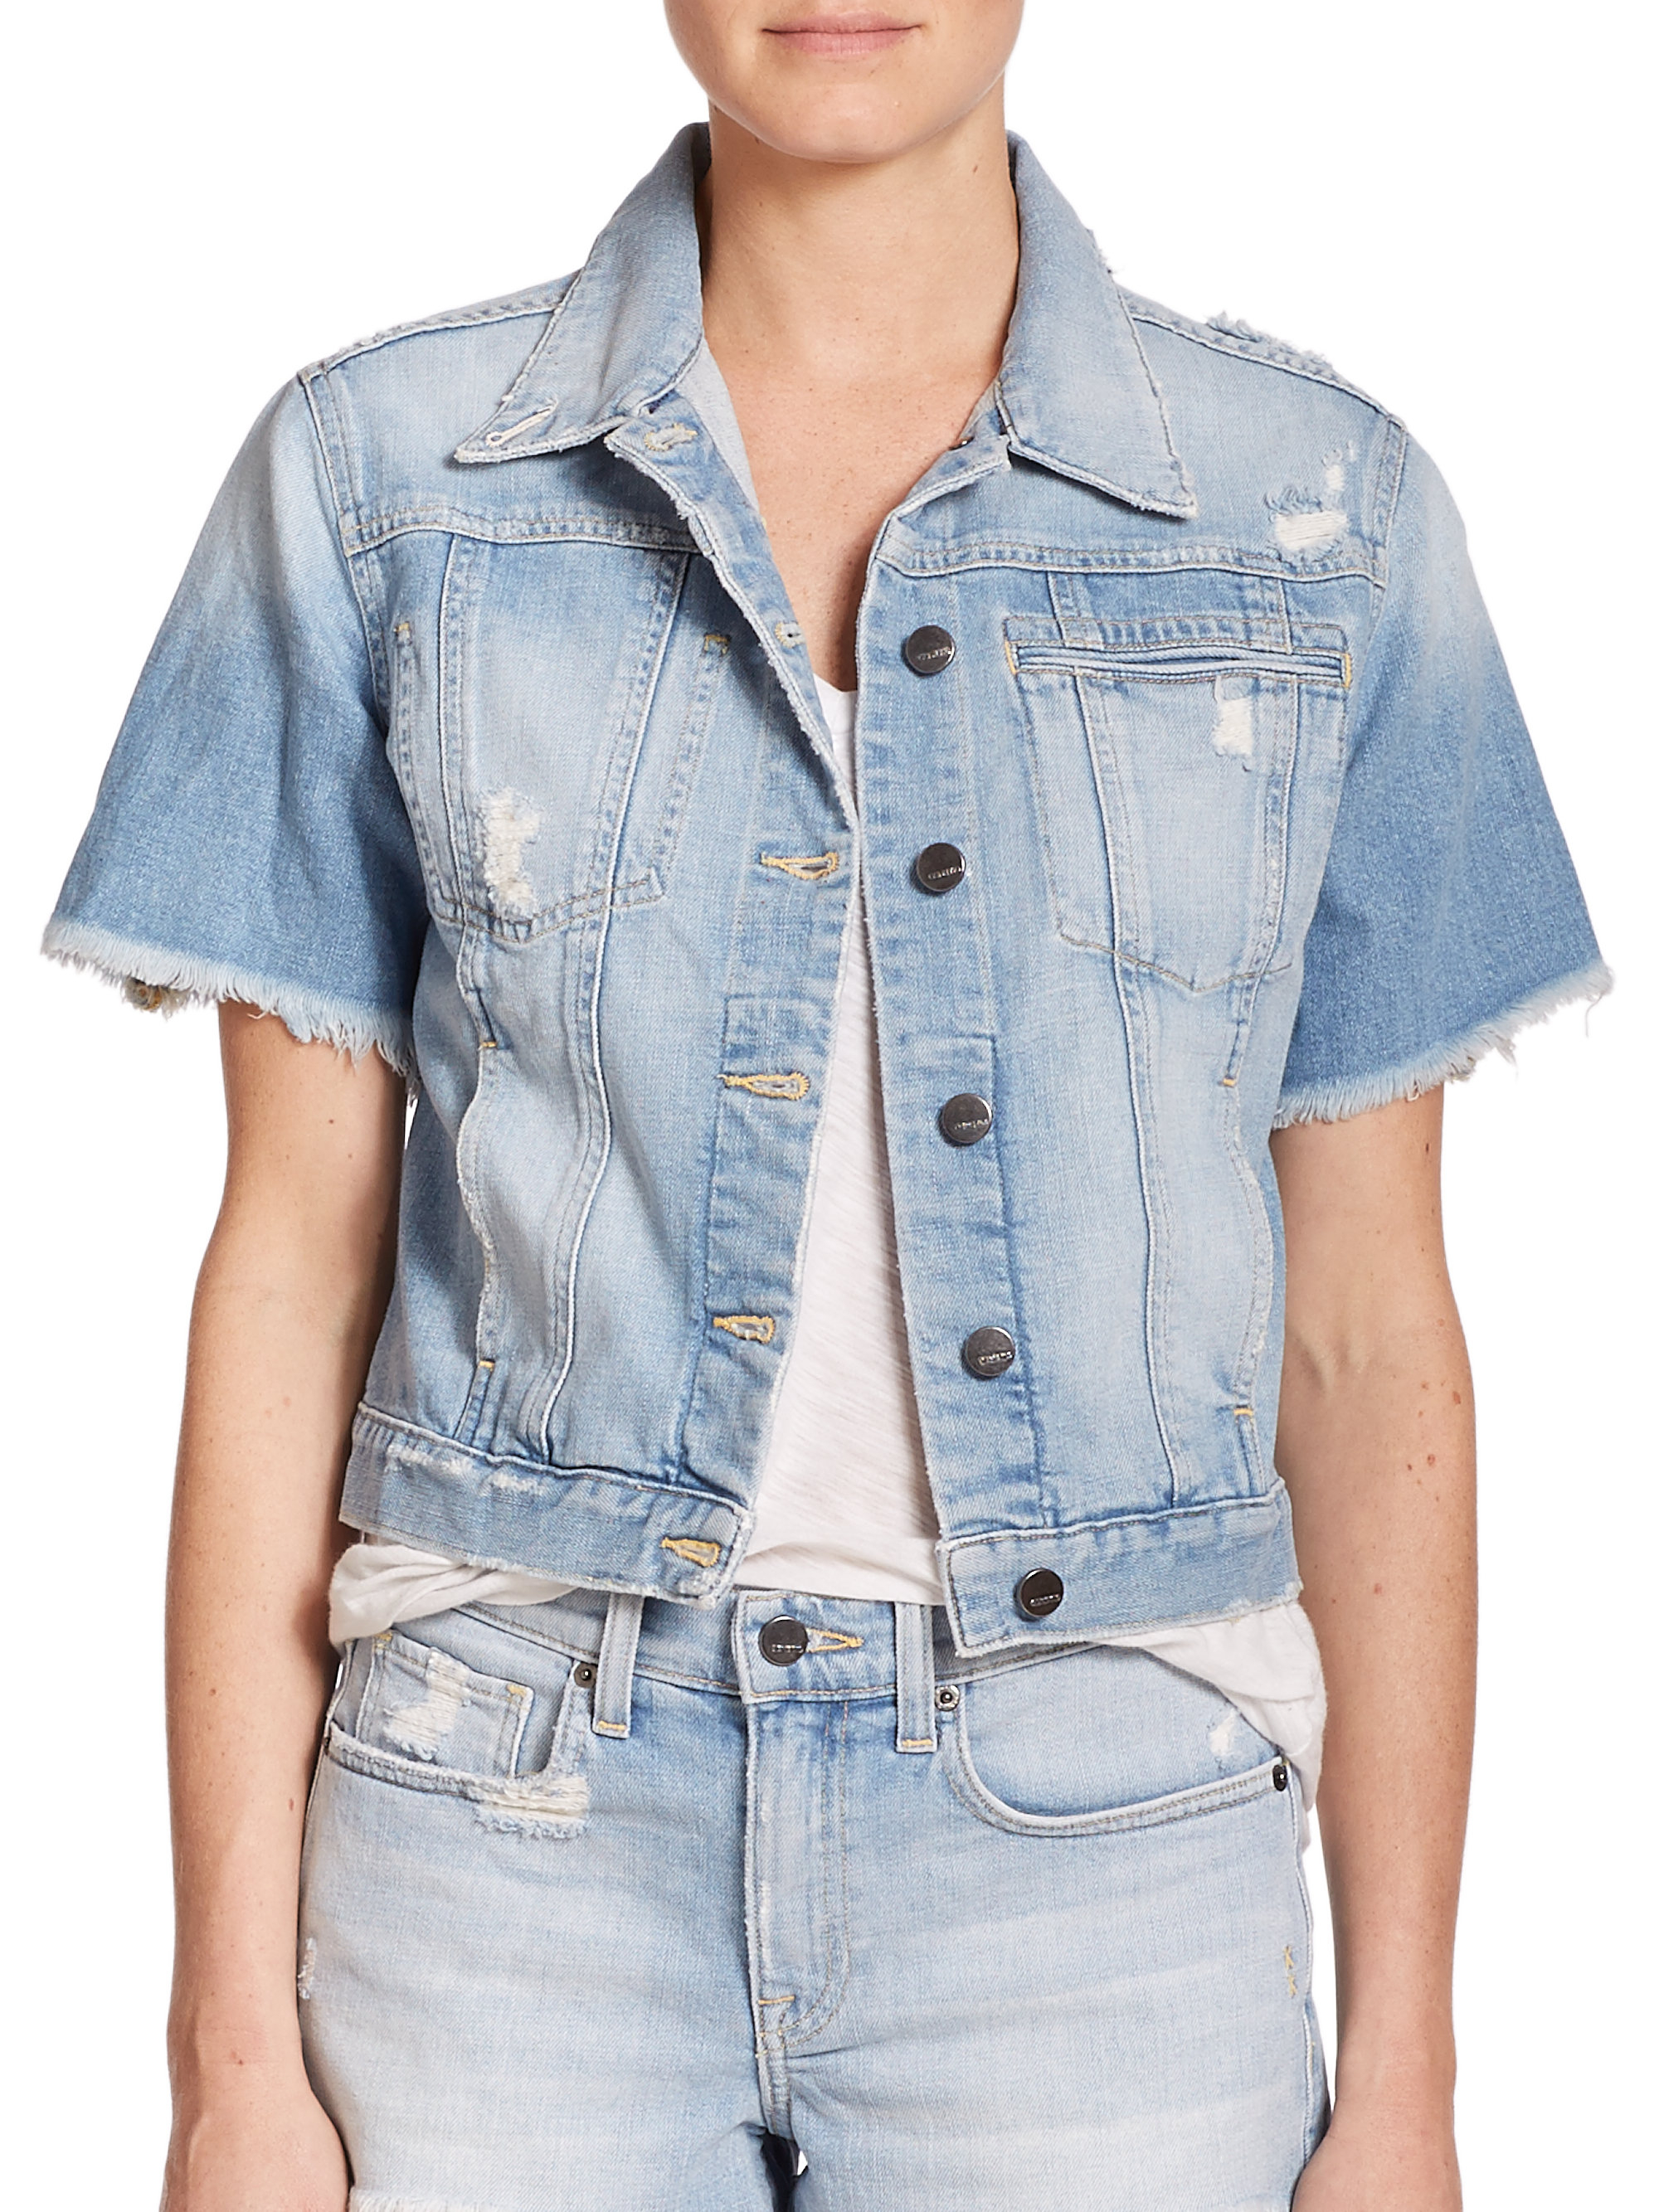 Free shipping BOTH ways on short sleeve jean jacket, from our vast selection of styles. Fast delivery, and 24/7/ real-person service with a smile. Click or call